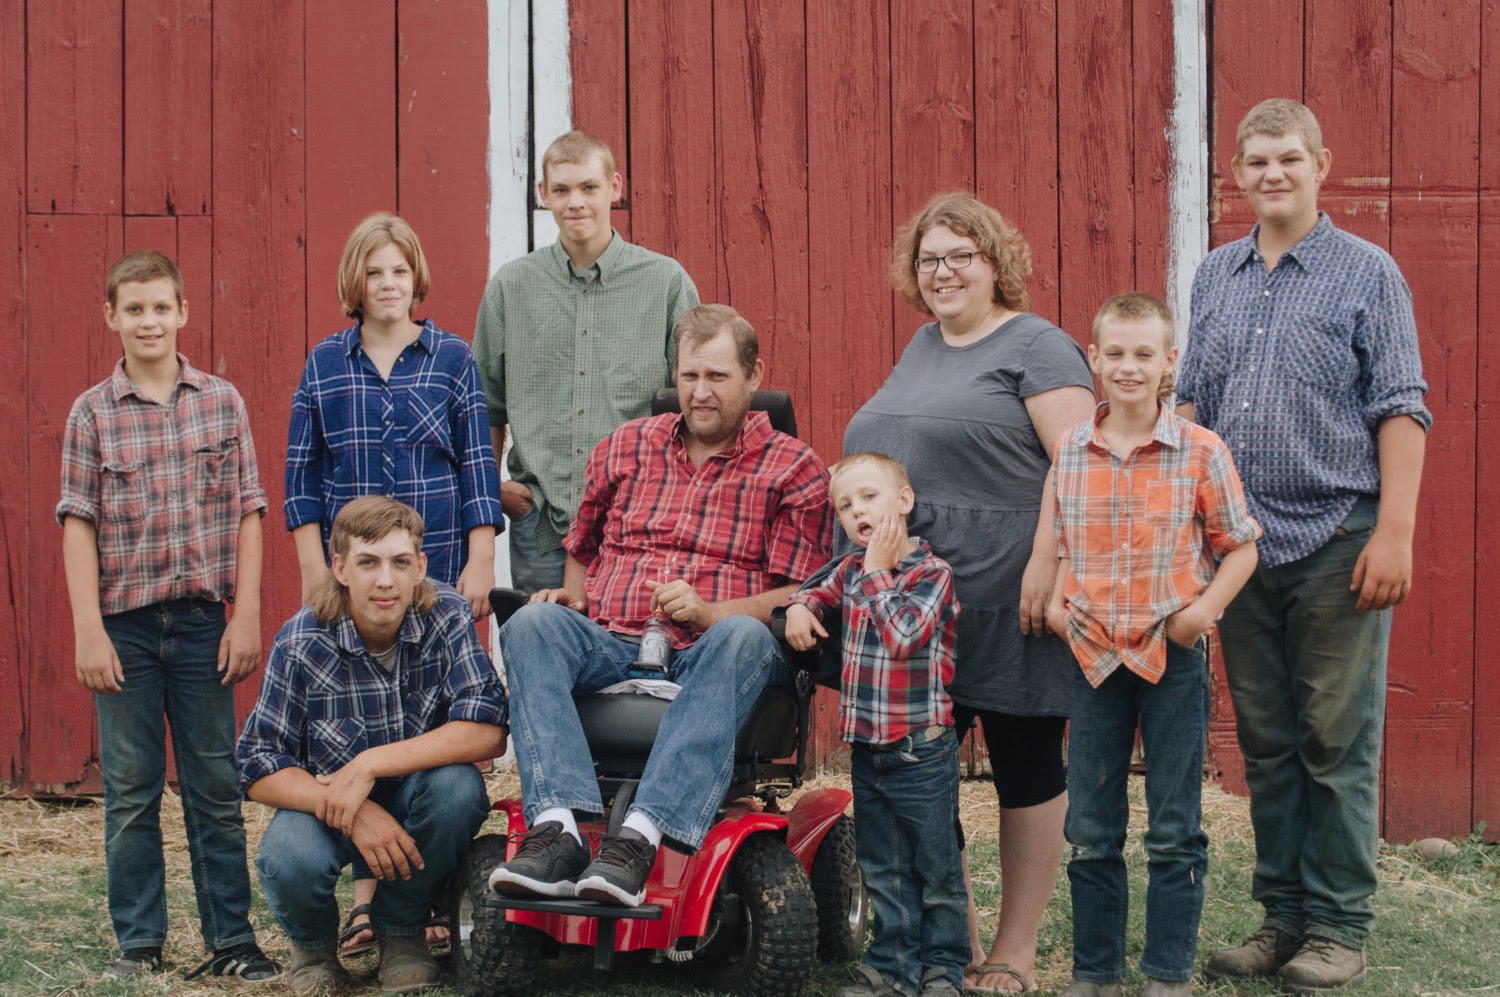 Guest Post: An Injured Farmer & The Strength of Family by Sara Boverhof